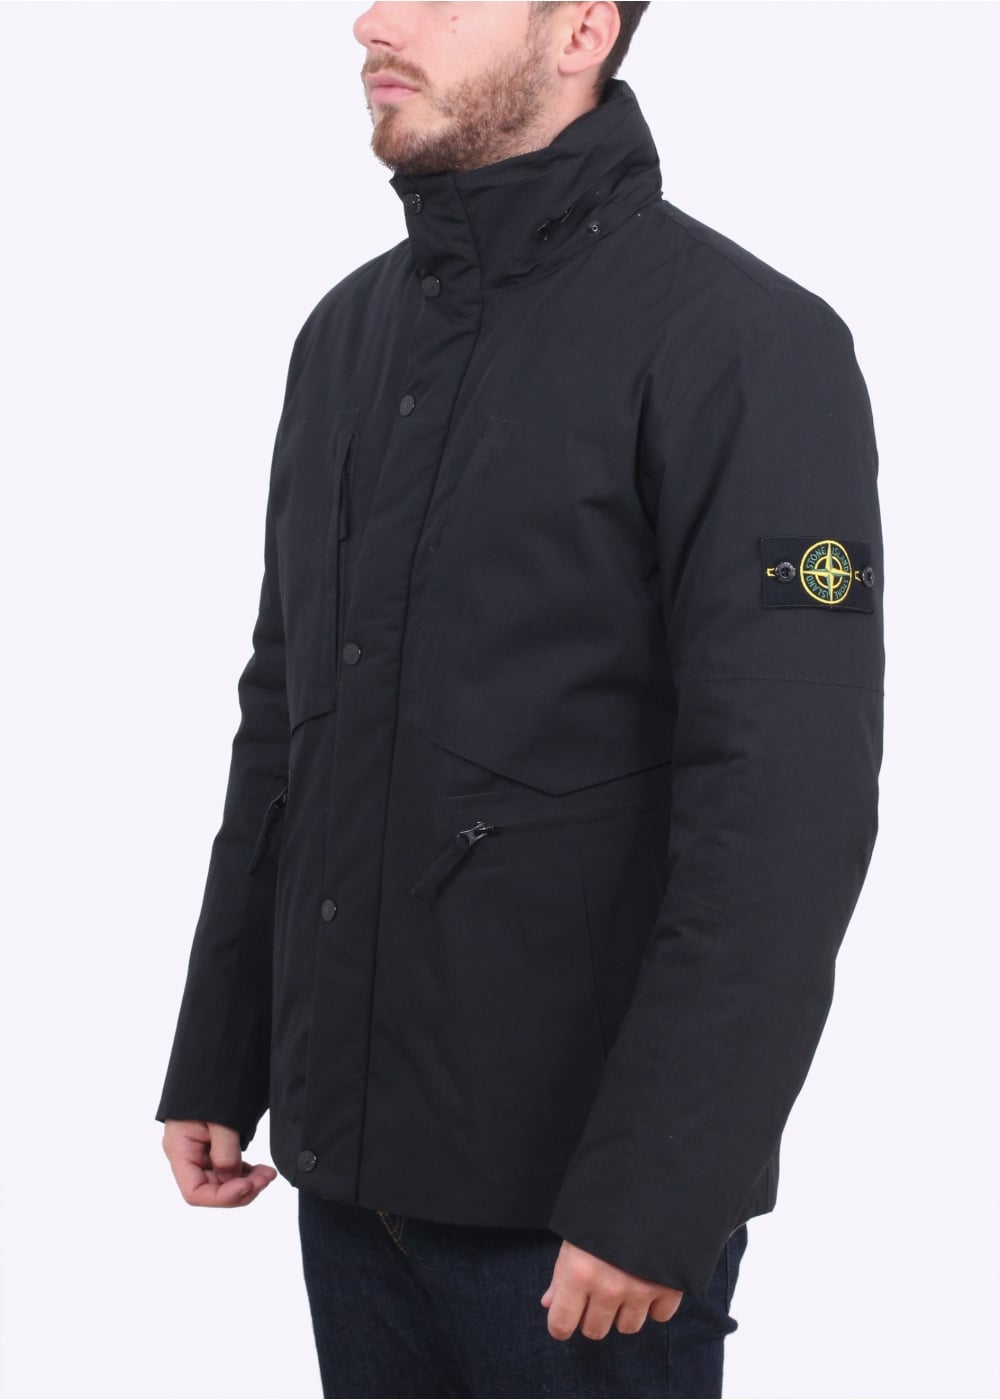 stone island water repellent jacket black stone island from triads uk. Black Bedroom Furniture Sets. Home Design Ideas